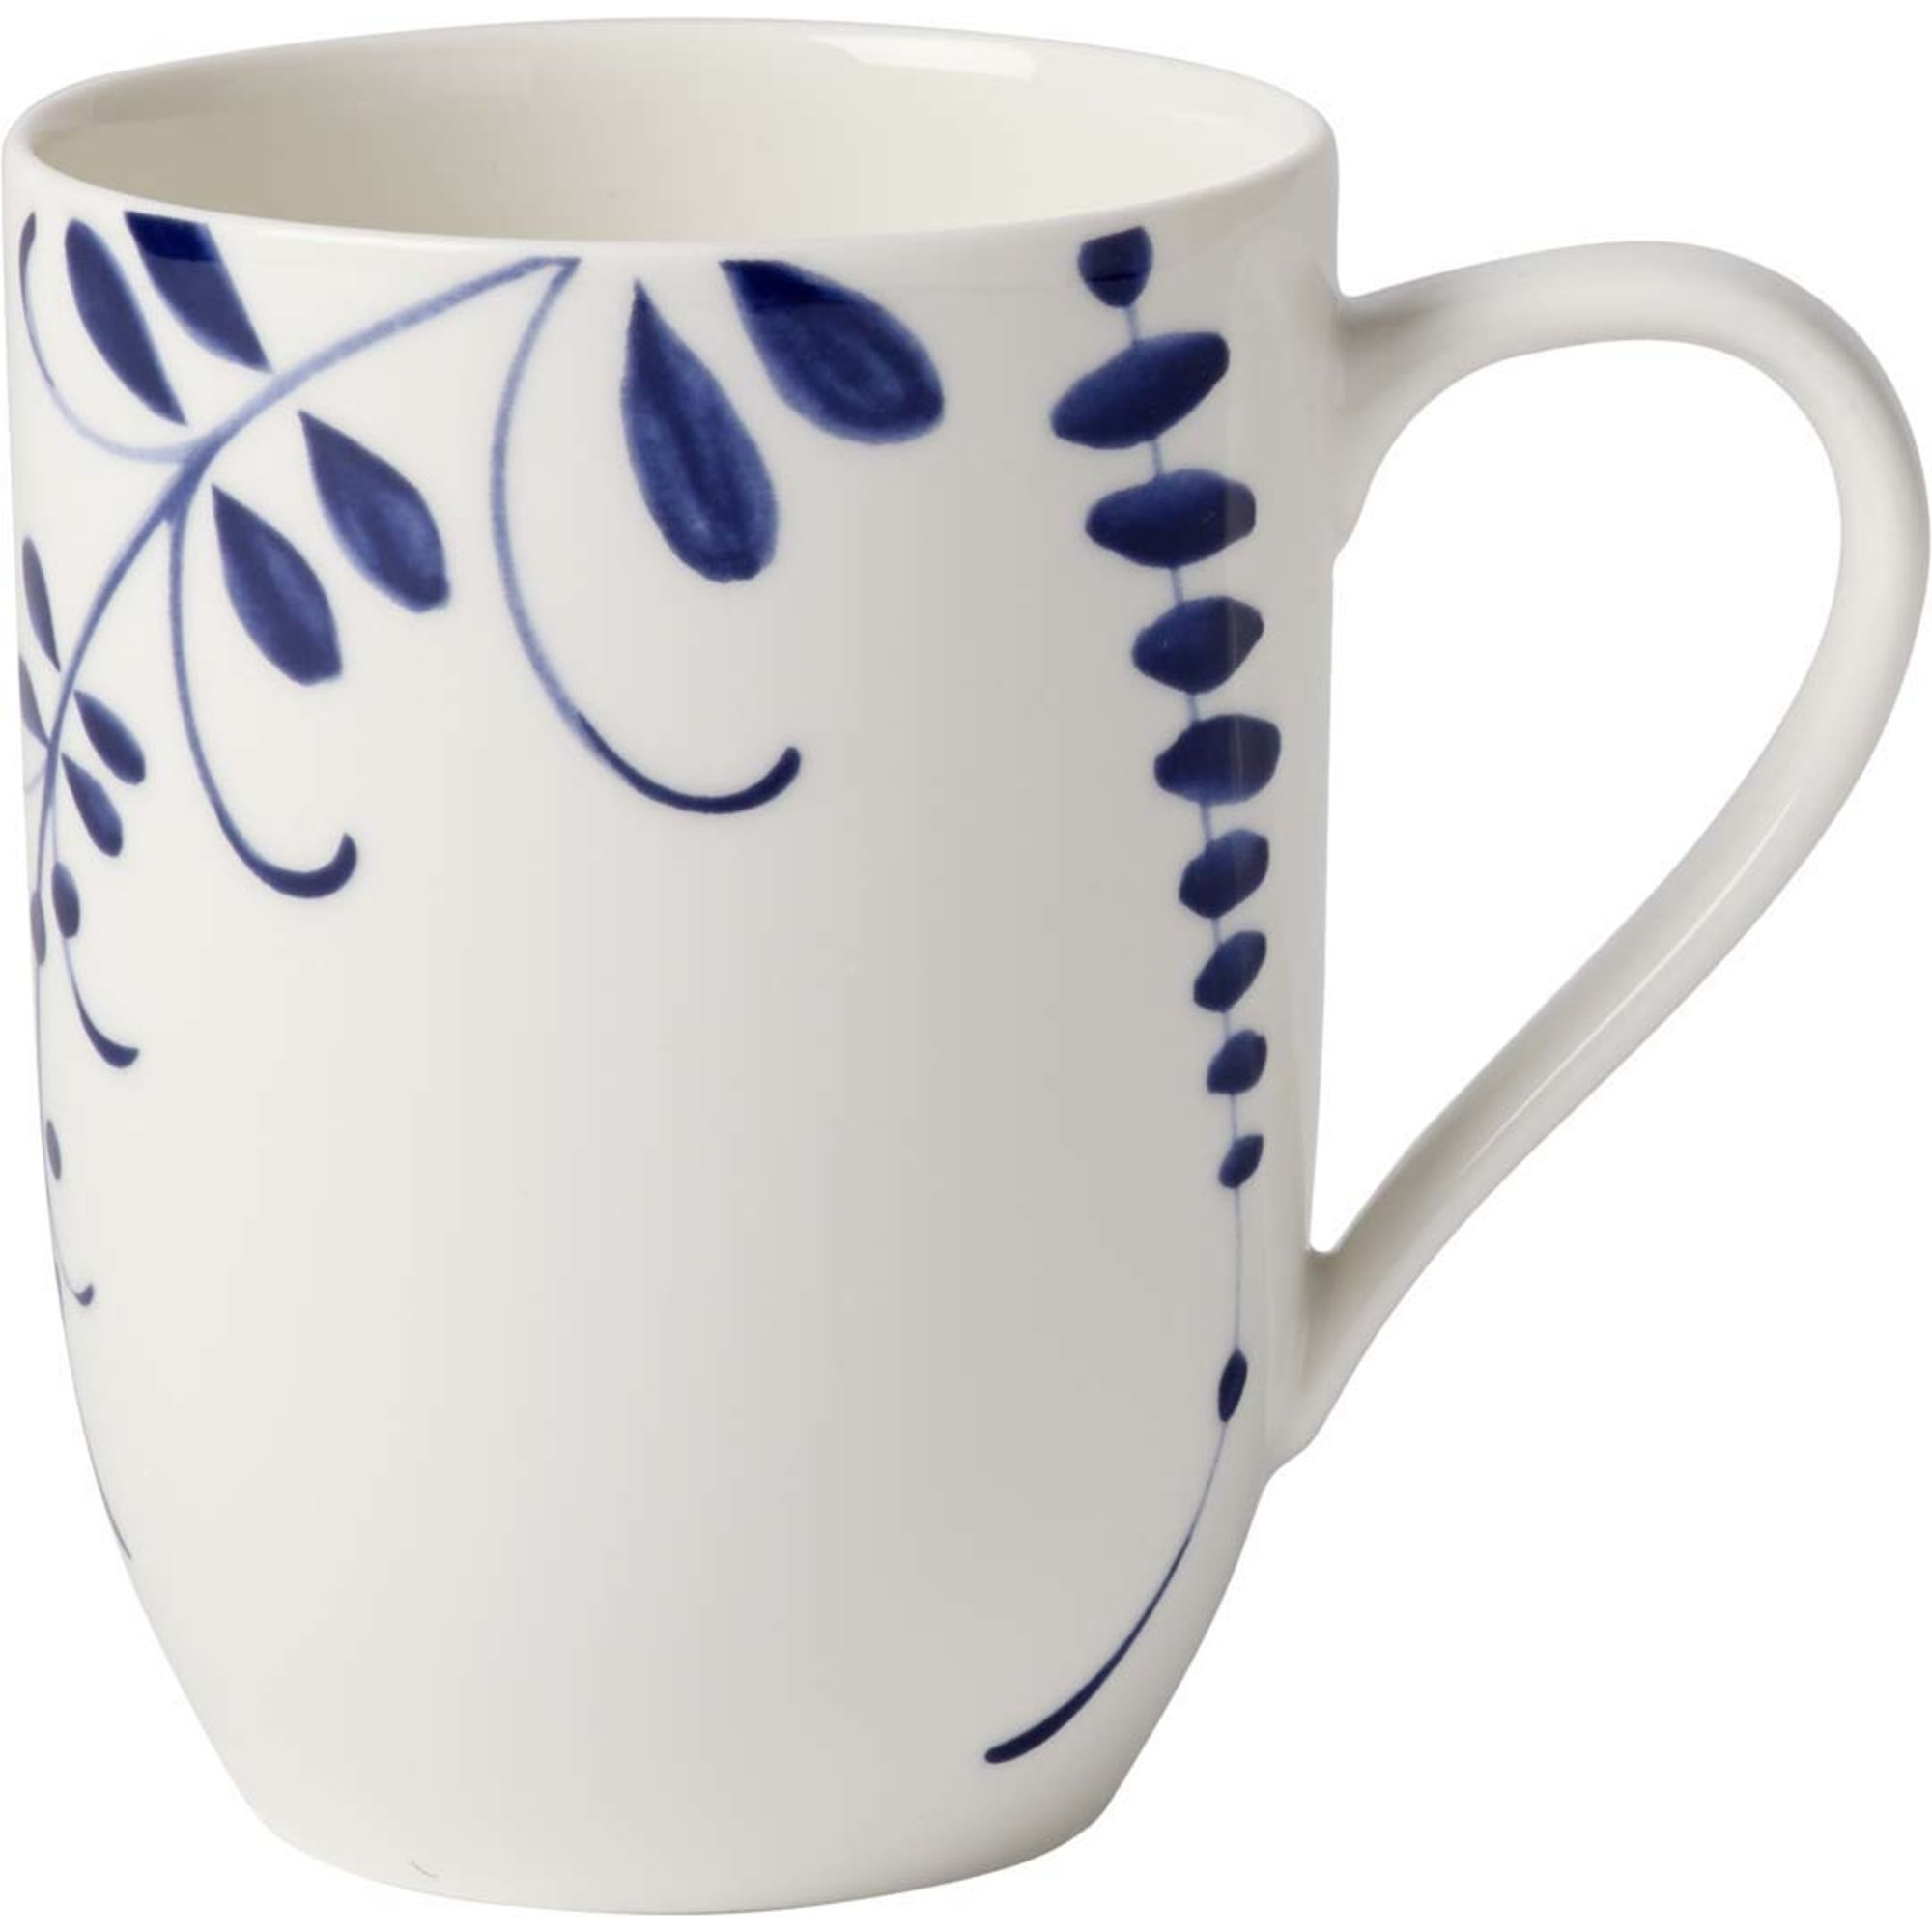 Villeroy & Boch Old Luxembourg Brindille Mugg 037